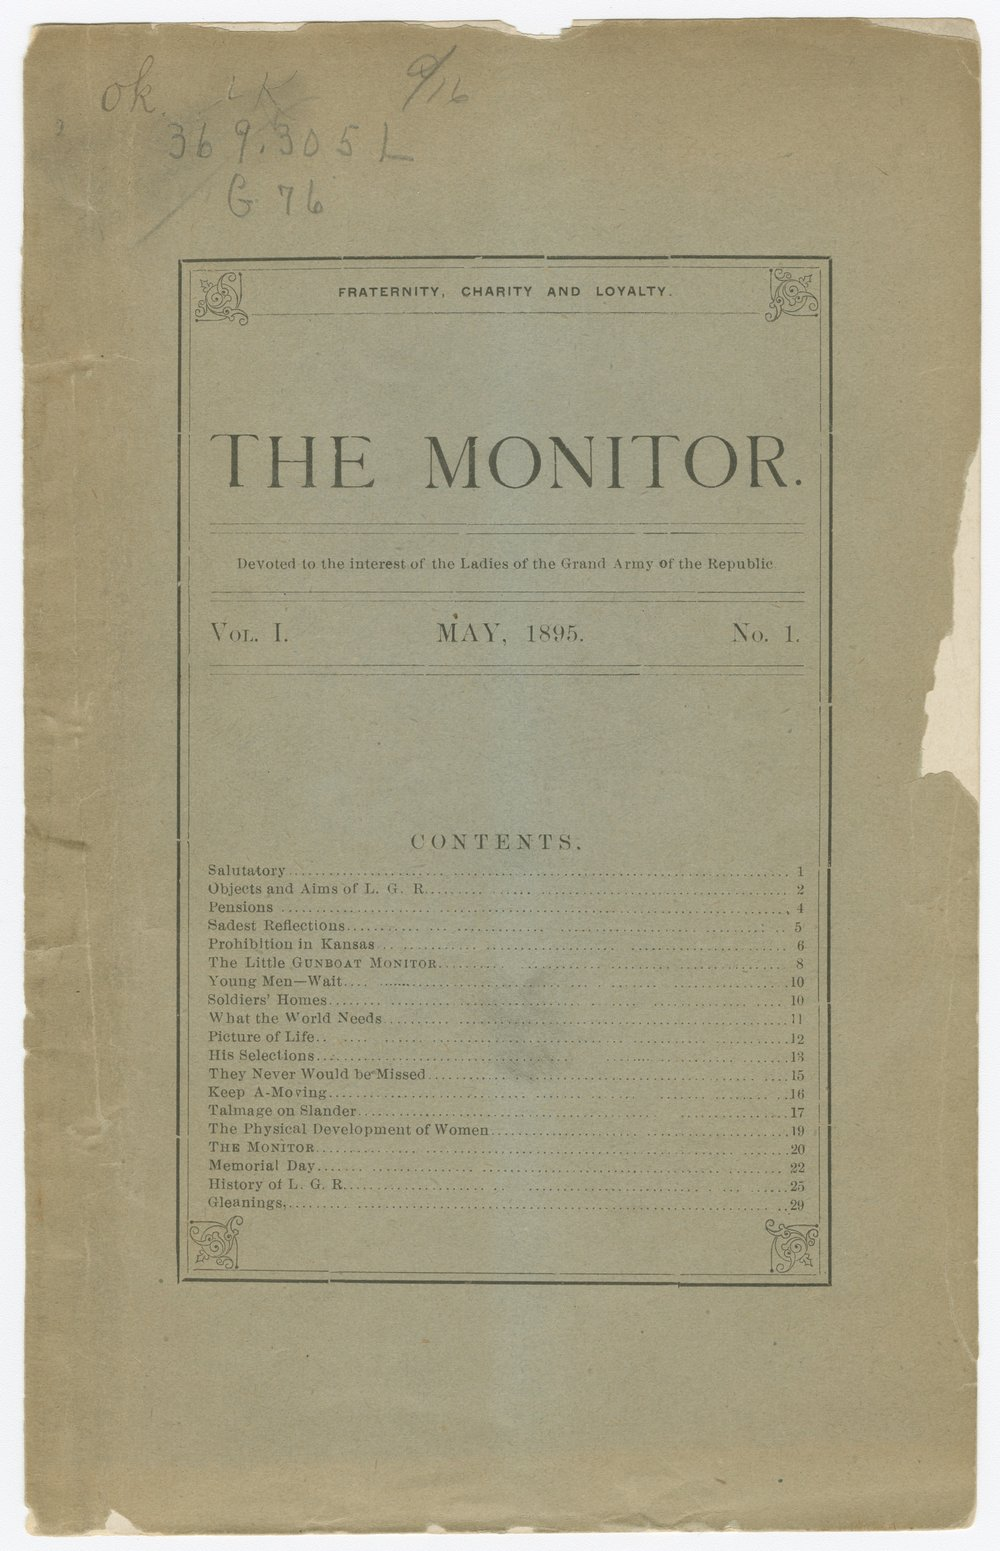 The Monitor - Front cover